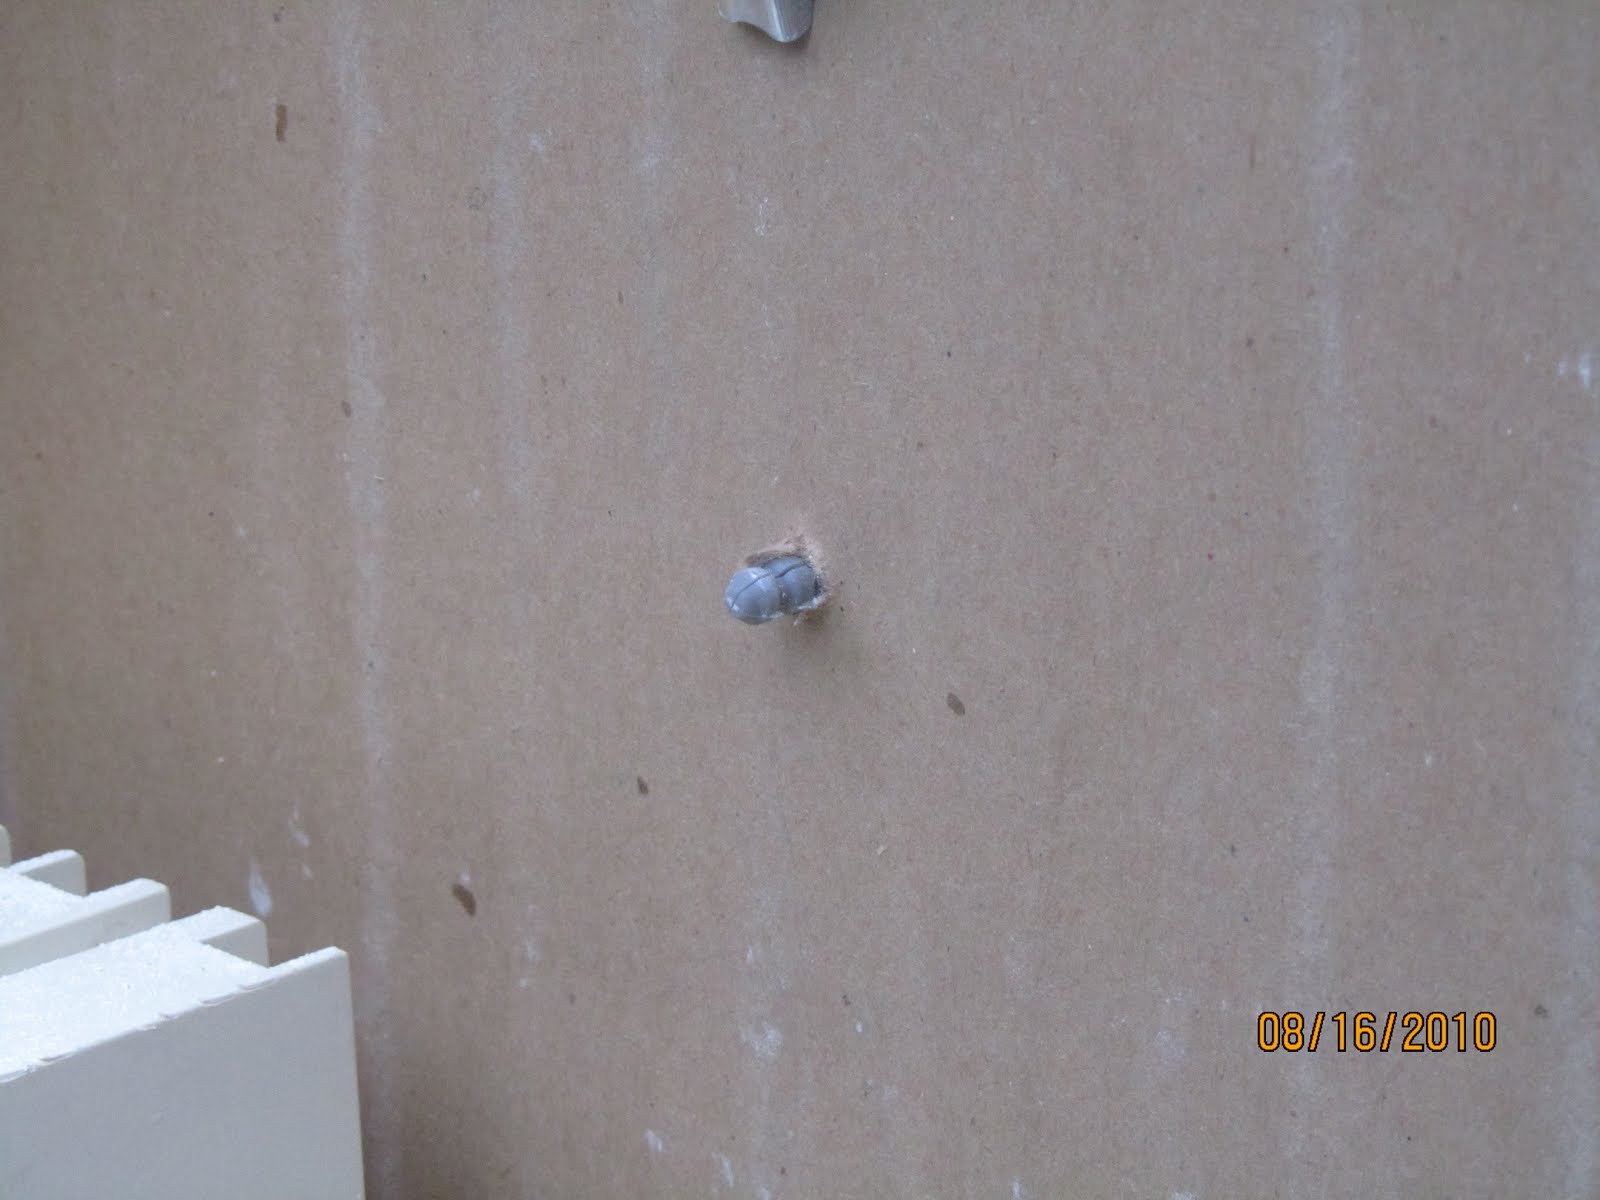 plastic expansion anchors are one of the most commonly used and tend to be the weakest solution for hollow wall anchors